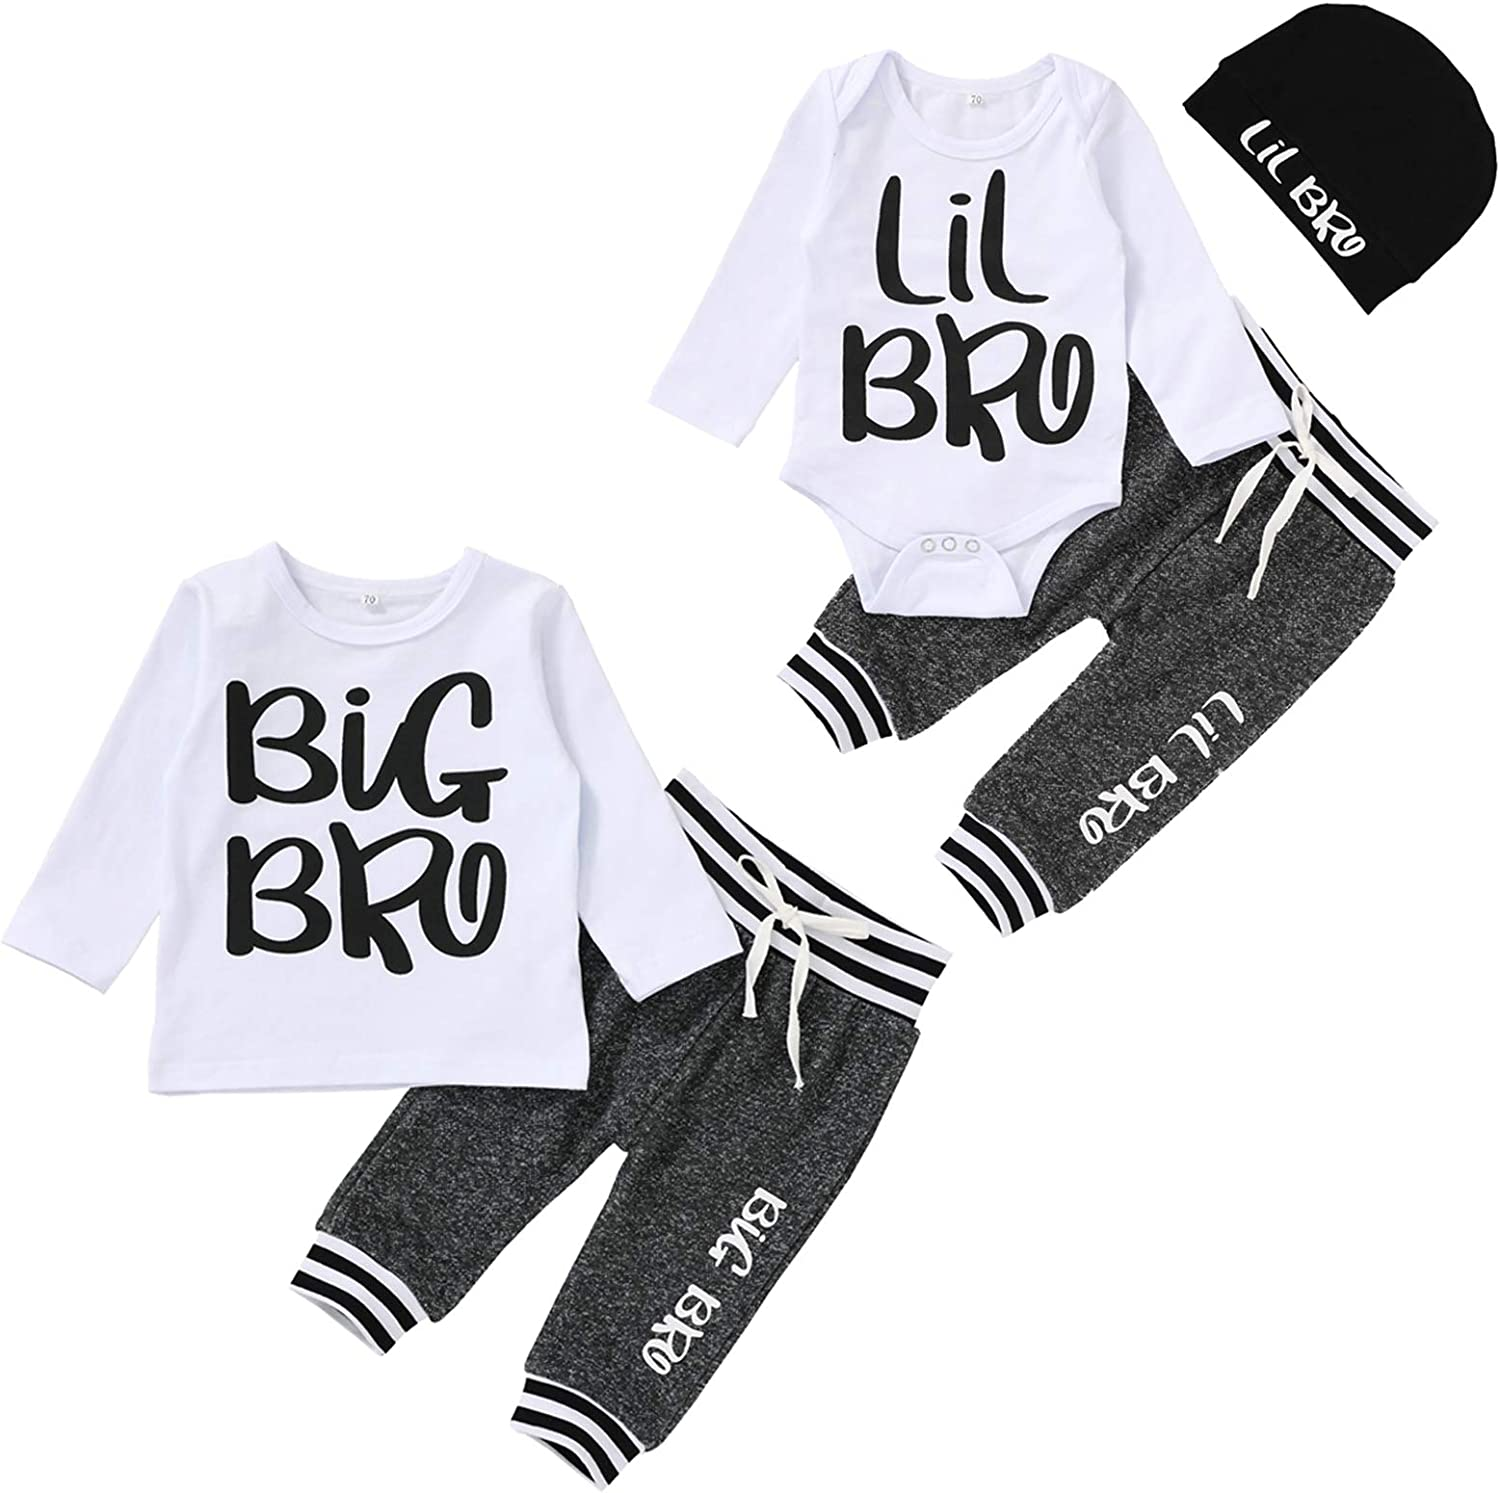 Baby store Boy Brother Matching Outfits SALENEW very popular Little Big Kids Lo